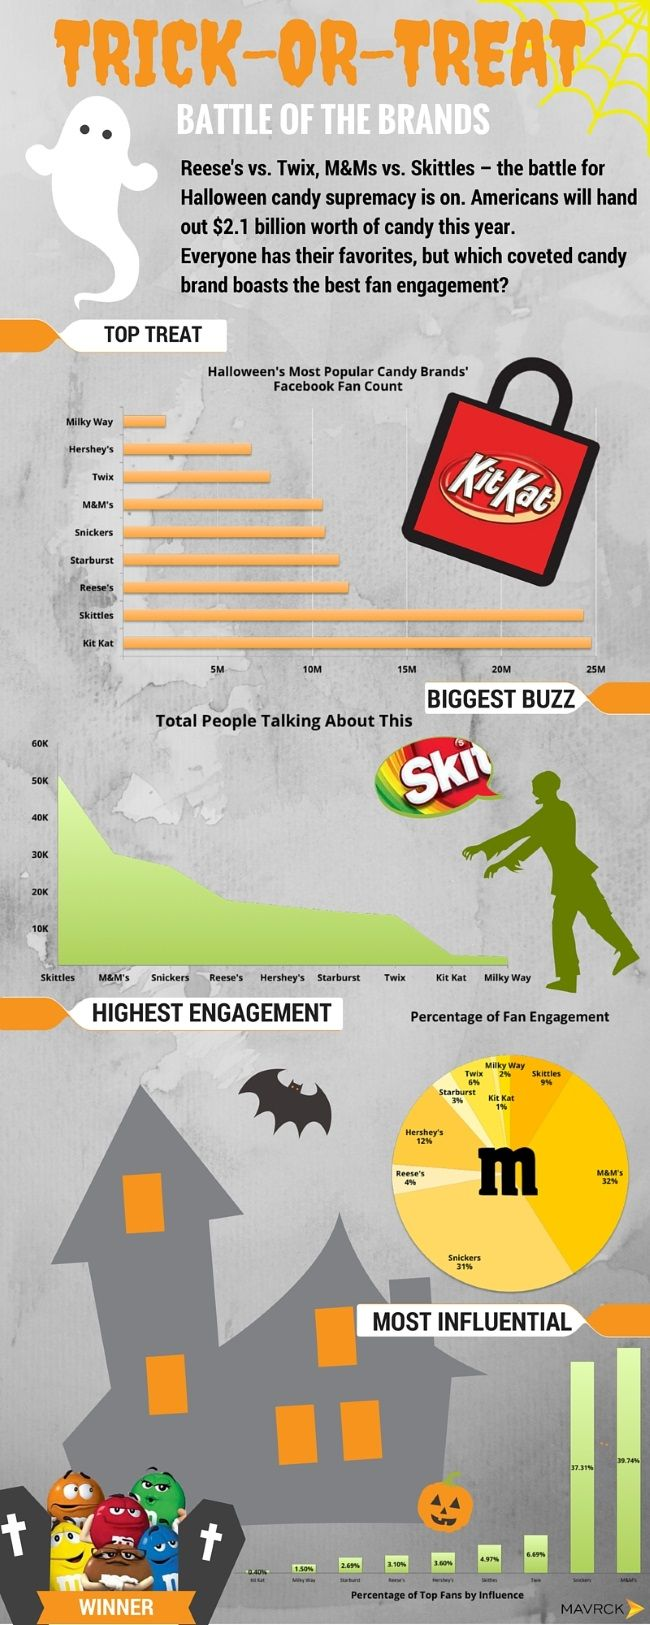 Trick or Treat Battle of the Brands #infographic